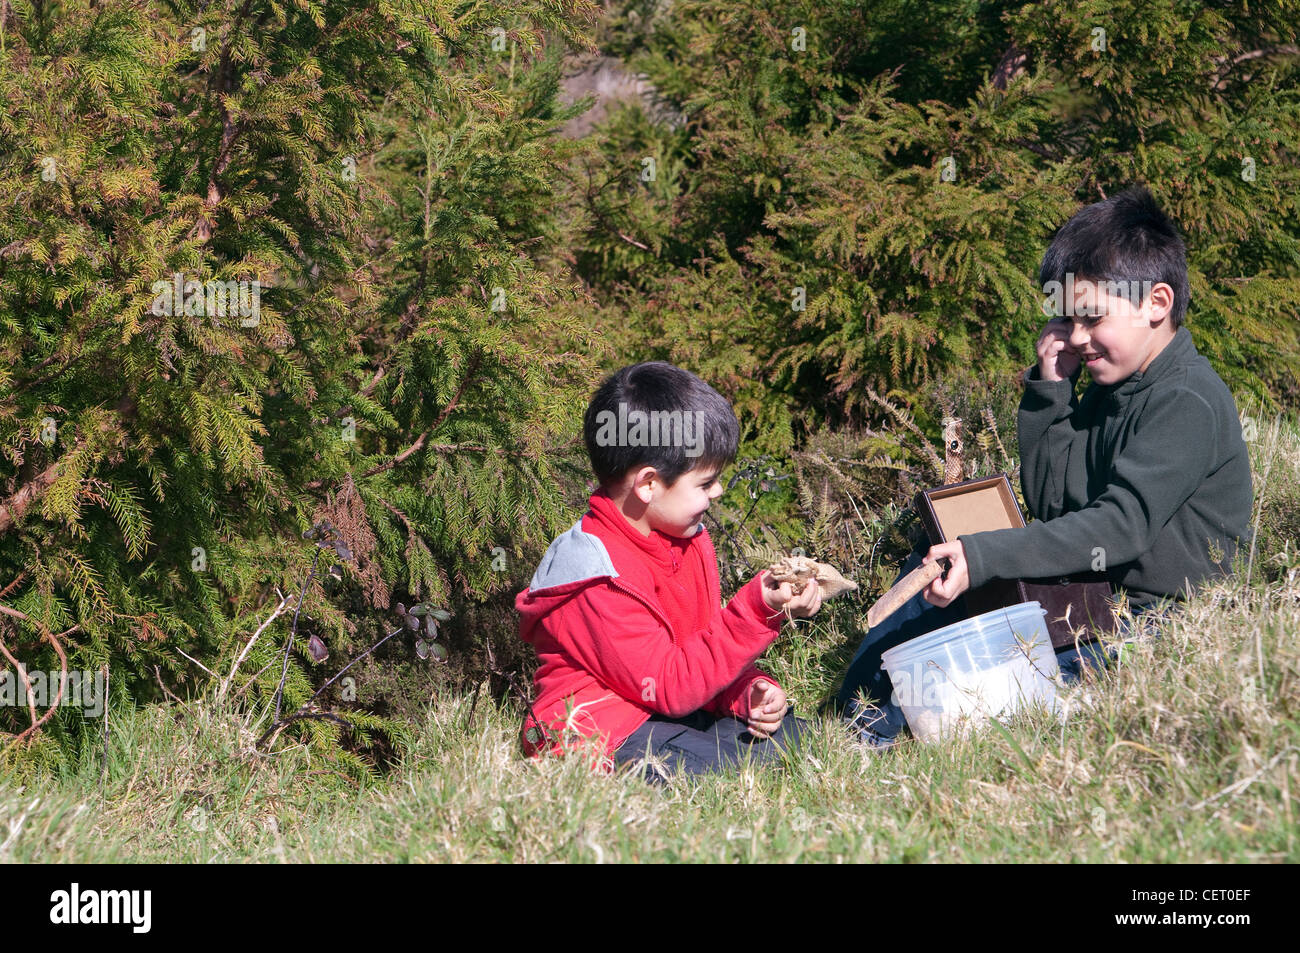 Two boys finding a geocache treasure in the hoods - Stock Image